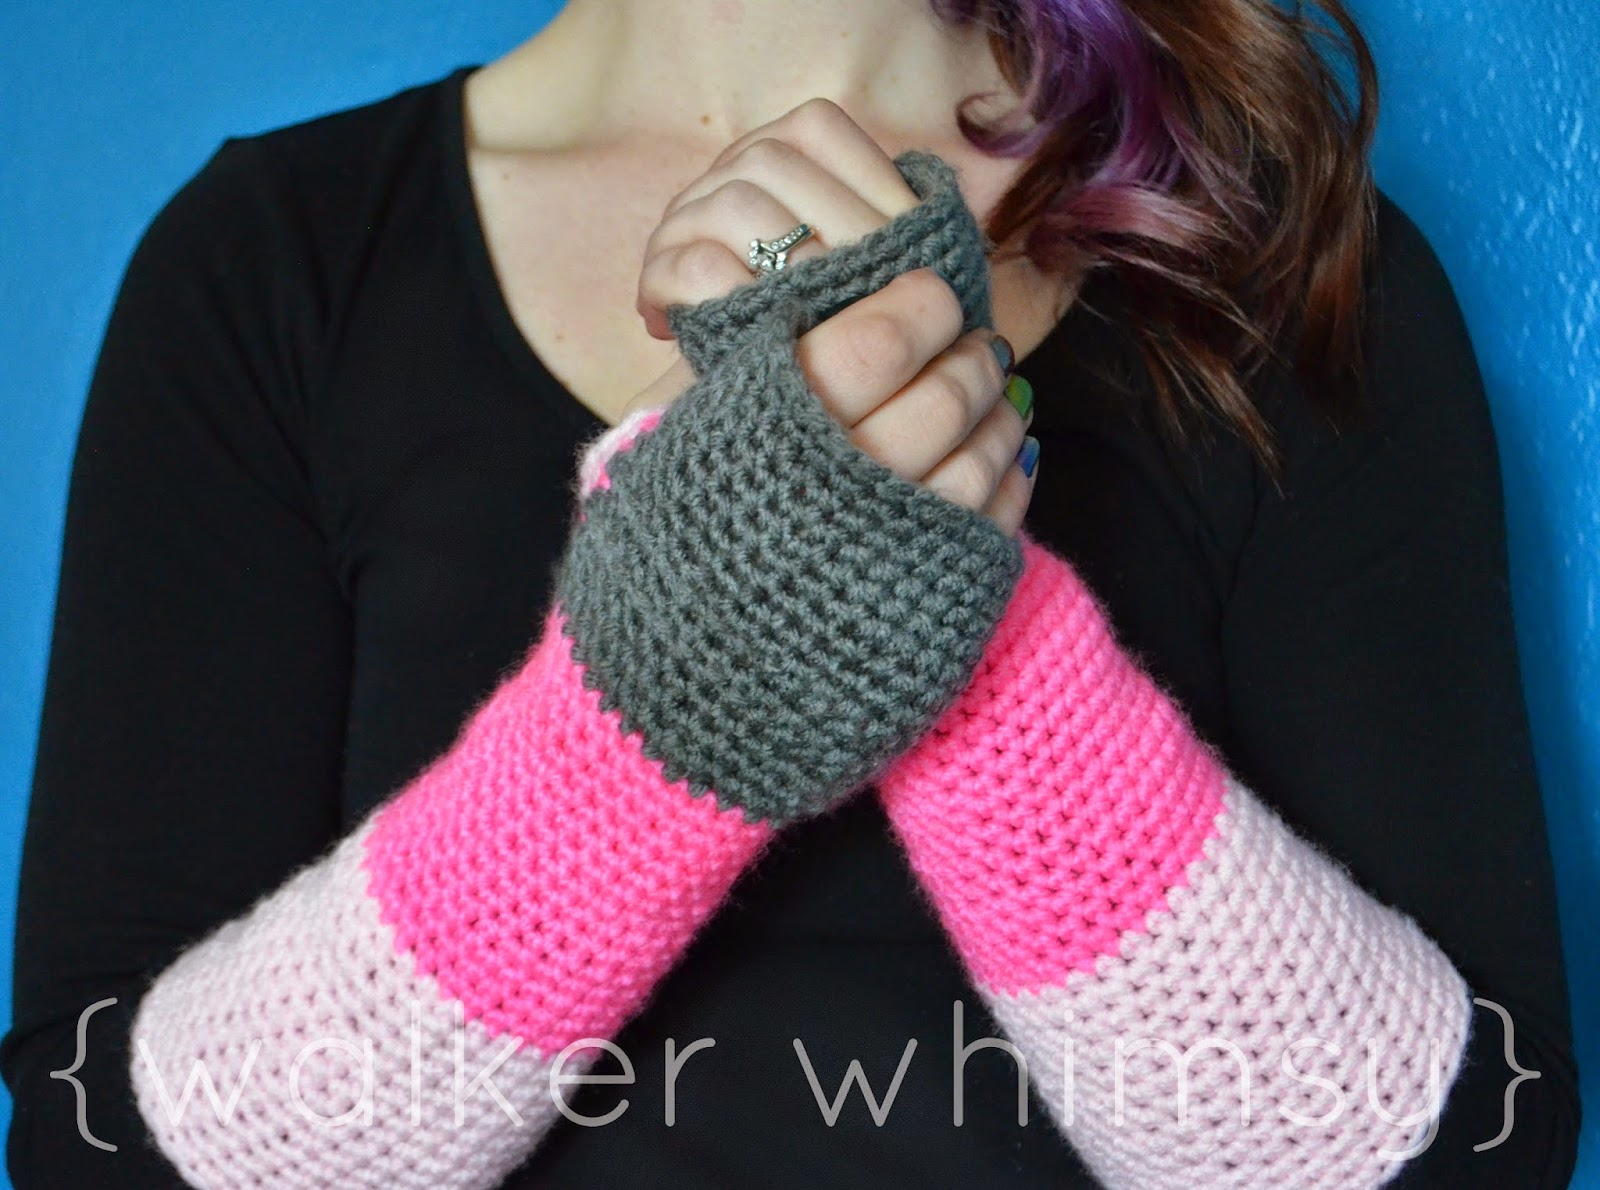 walker whimsy}: Color Block Arm Warmers